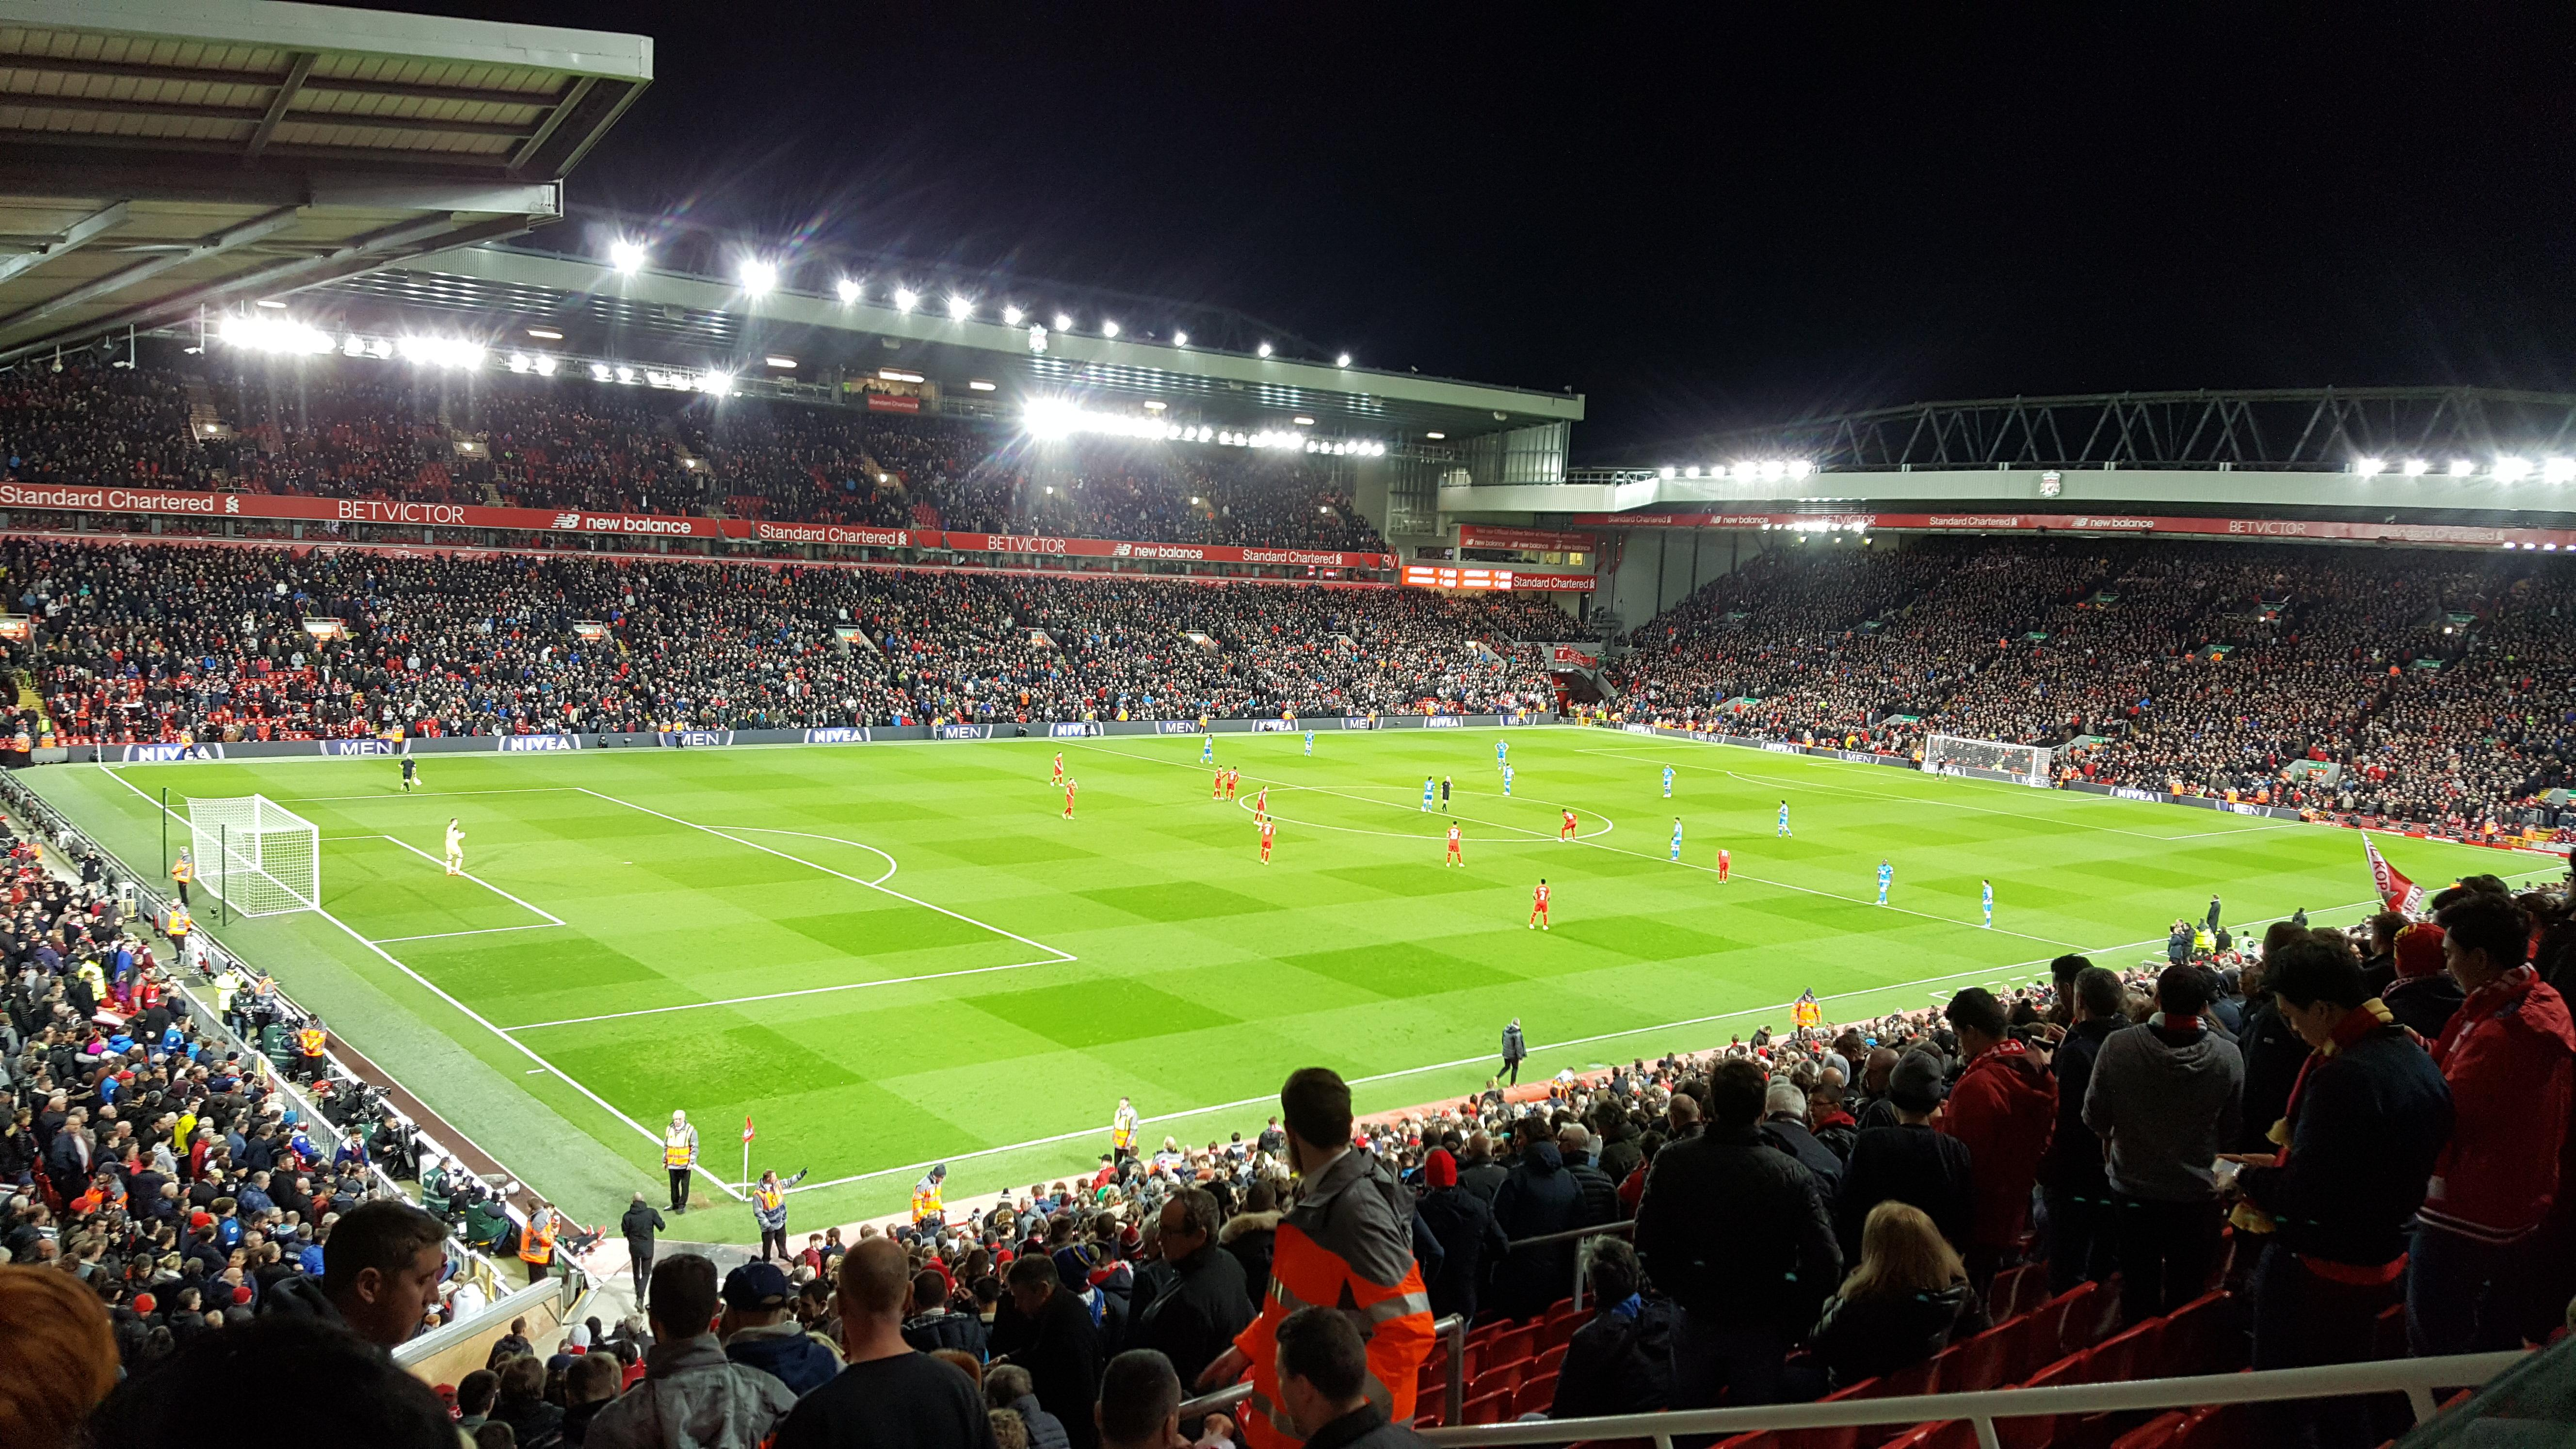 Anfield Section L1 Row 41